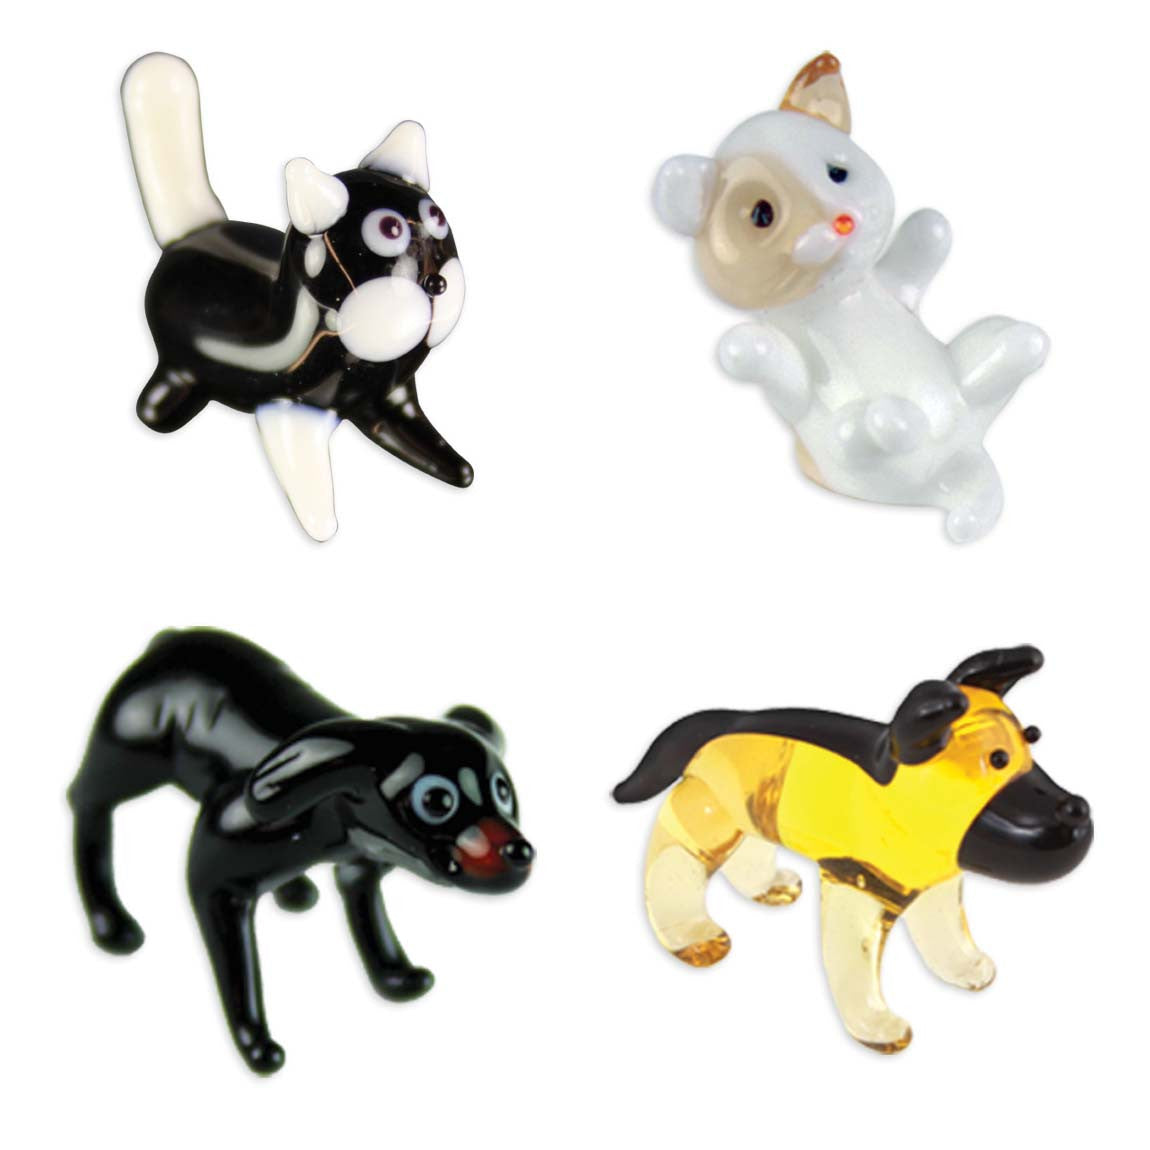 Looking Glass Torch - 2 Feline & 2 Canine Figurines - Cat, Kitten, Lab & Doberman (4-Pack) - Off The Wall Toys and Gifts